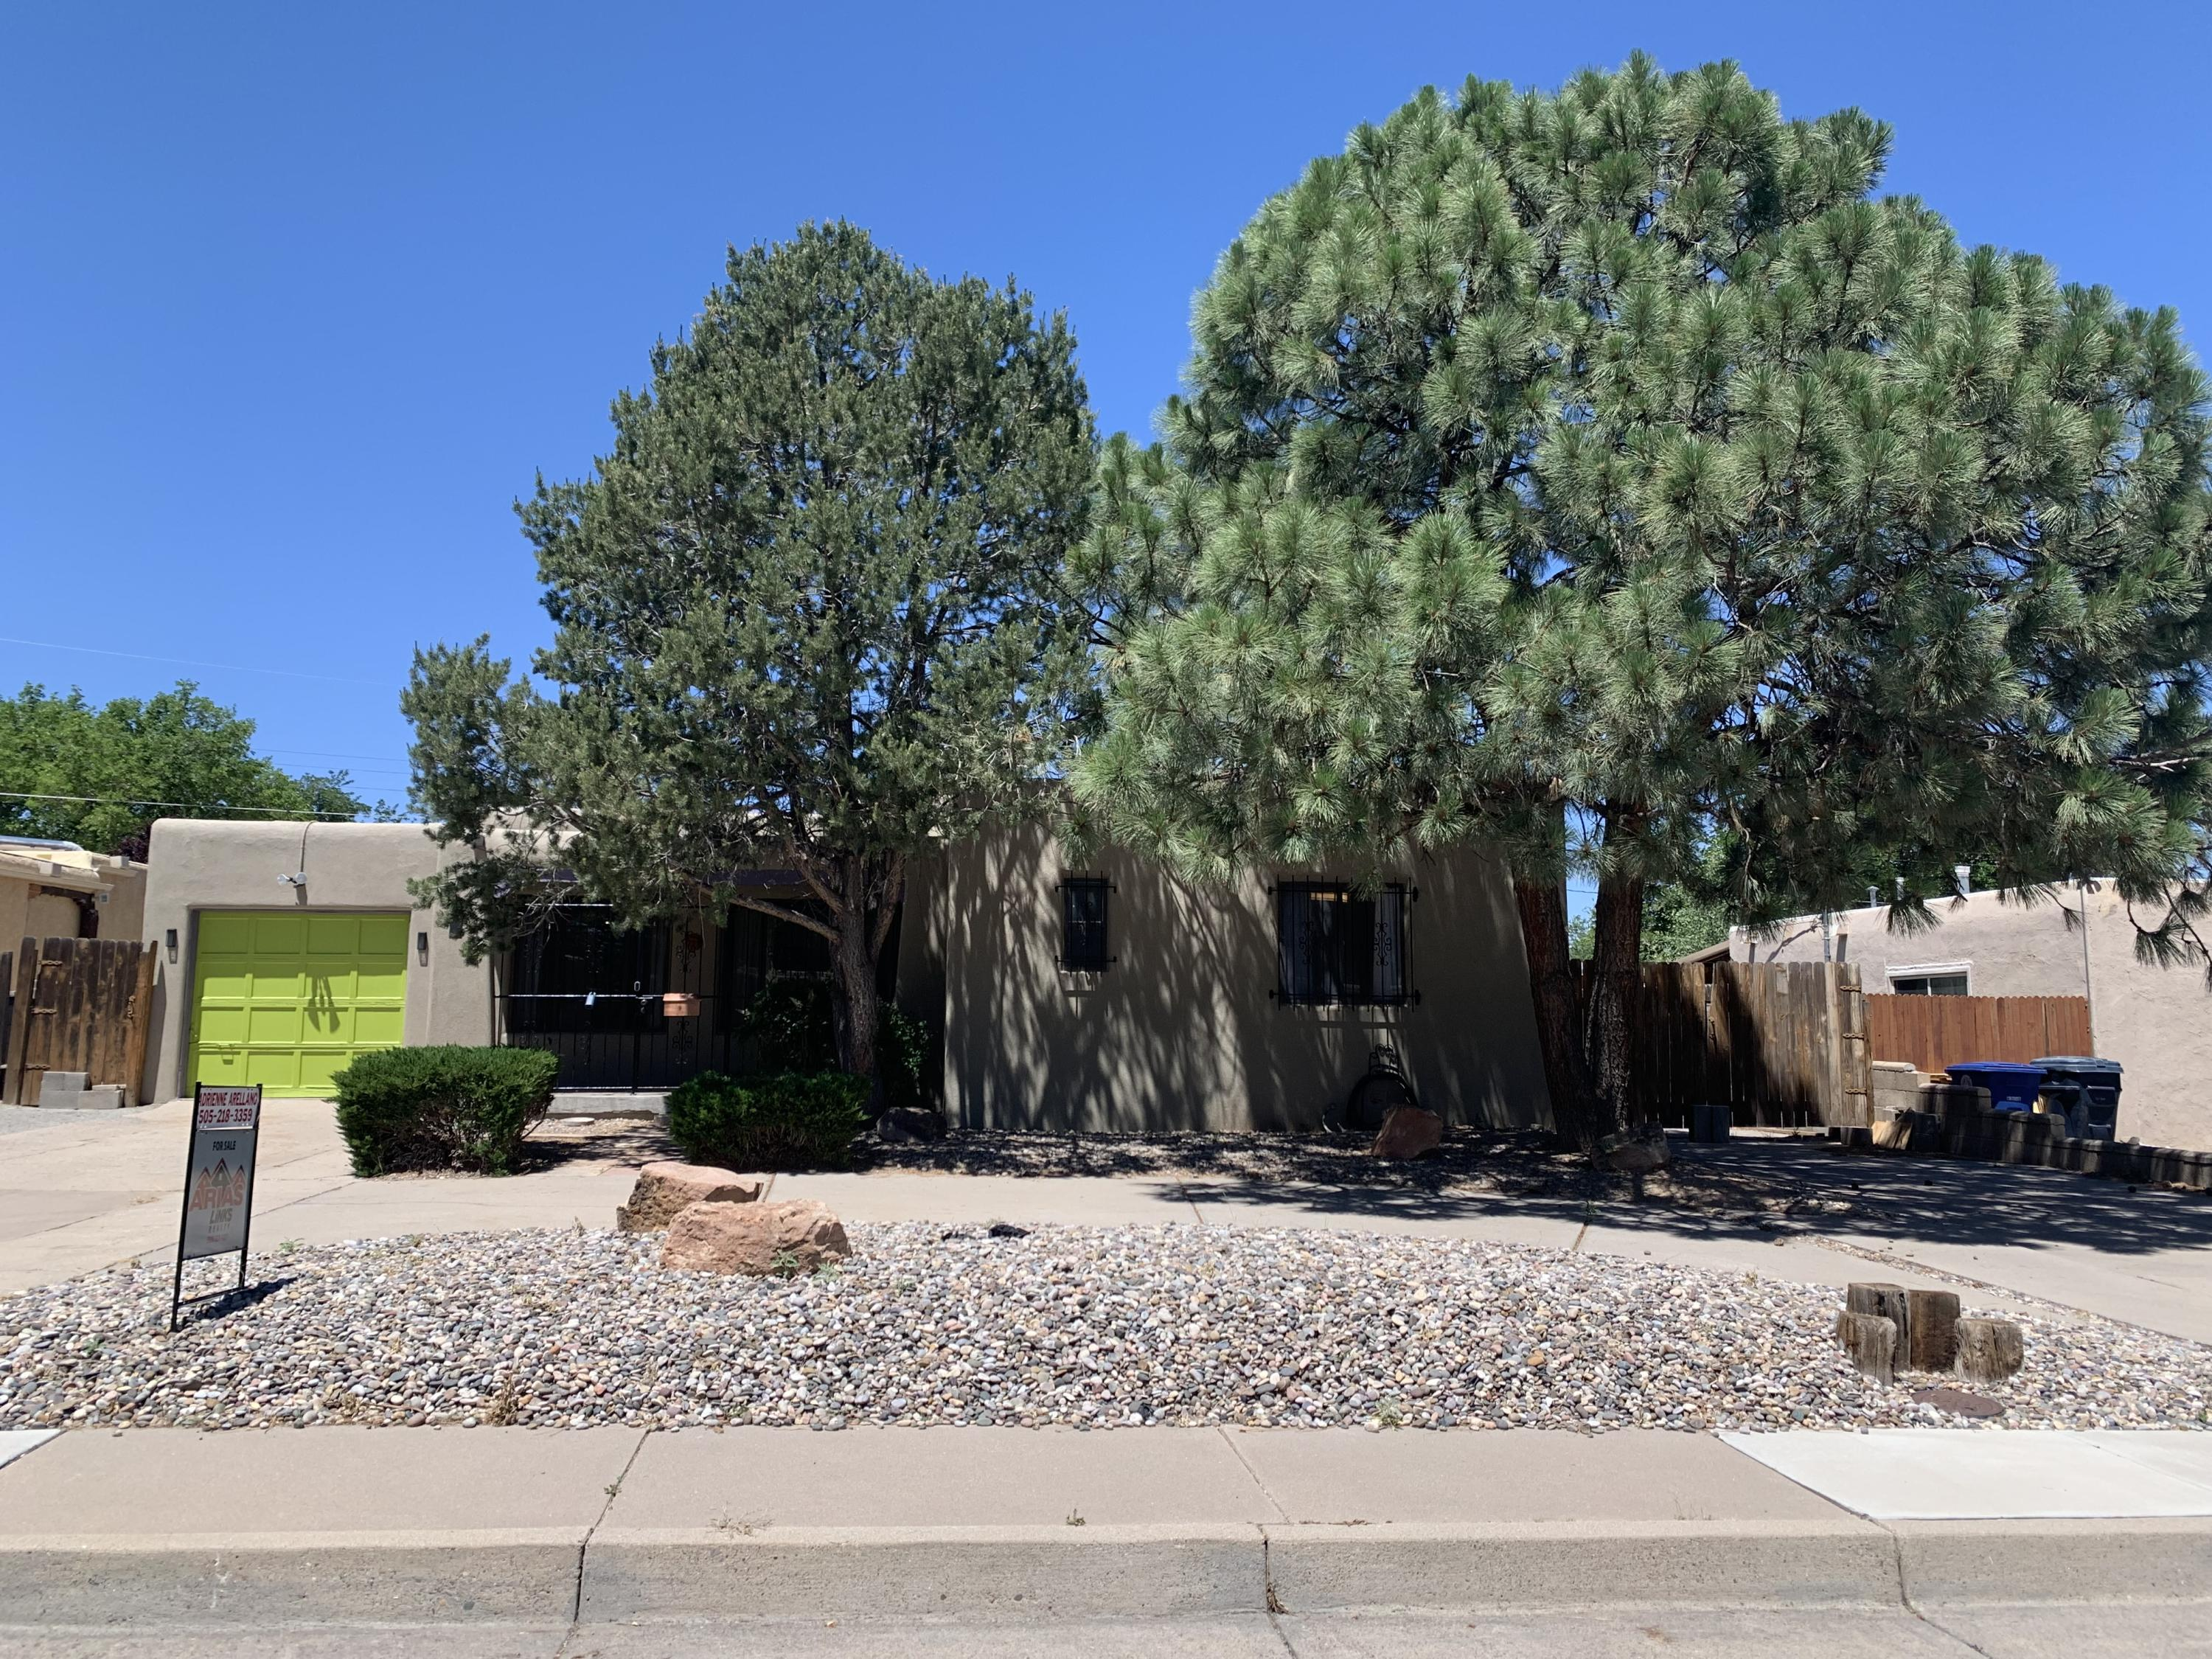 Charming 2, possible 3 bedroom home with fully landscaped yard.  3rd bedroom could be used as office/den.  Newer appliances, roof and stucco.  Refrigerated air a plus!  Home has side yard access that fits a full size RV.  Home sold as is, needs interior work and cleaning.  So much potential!